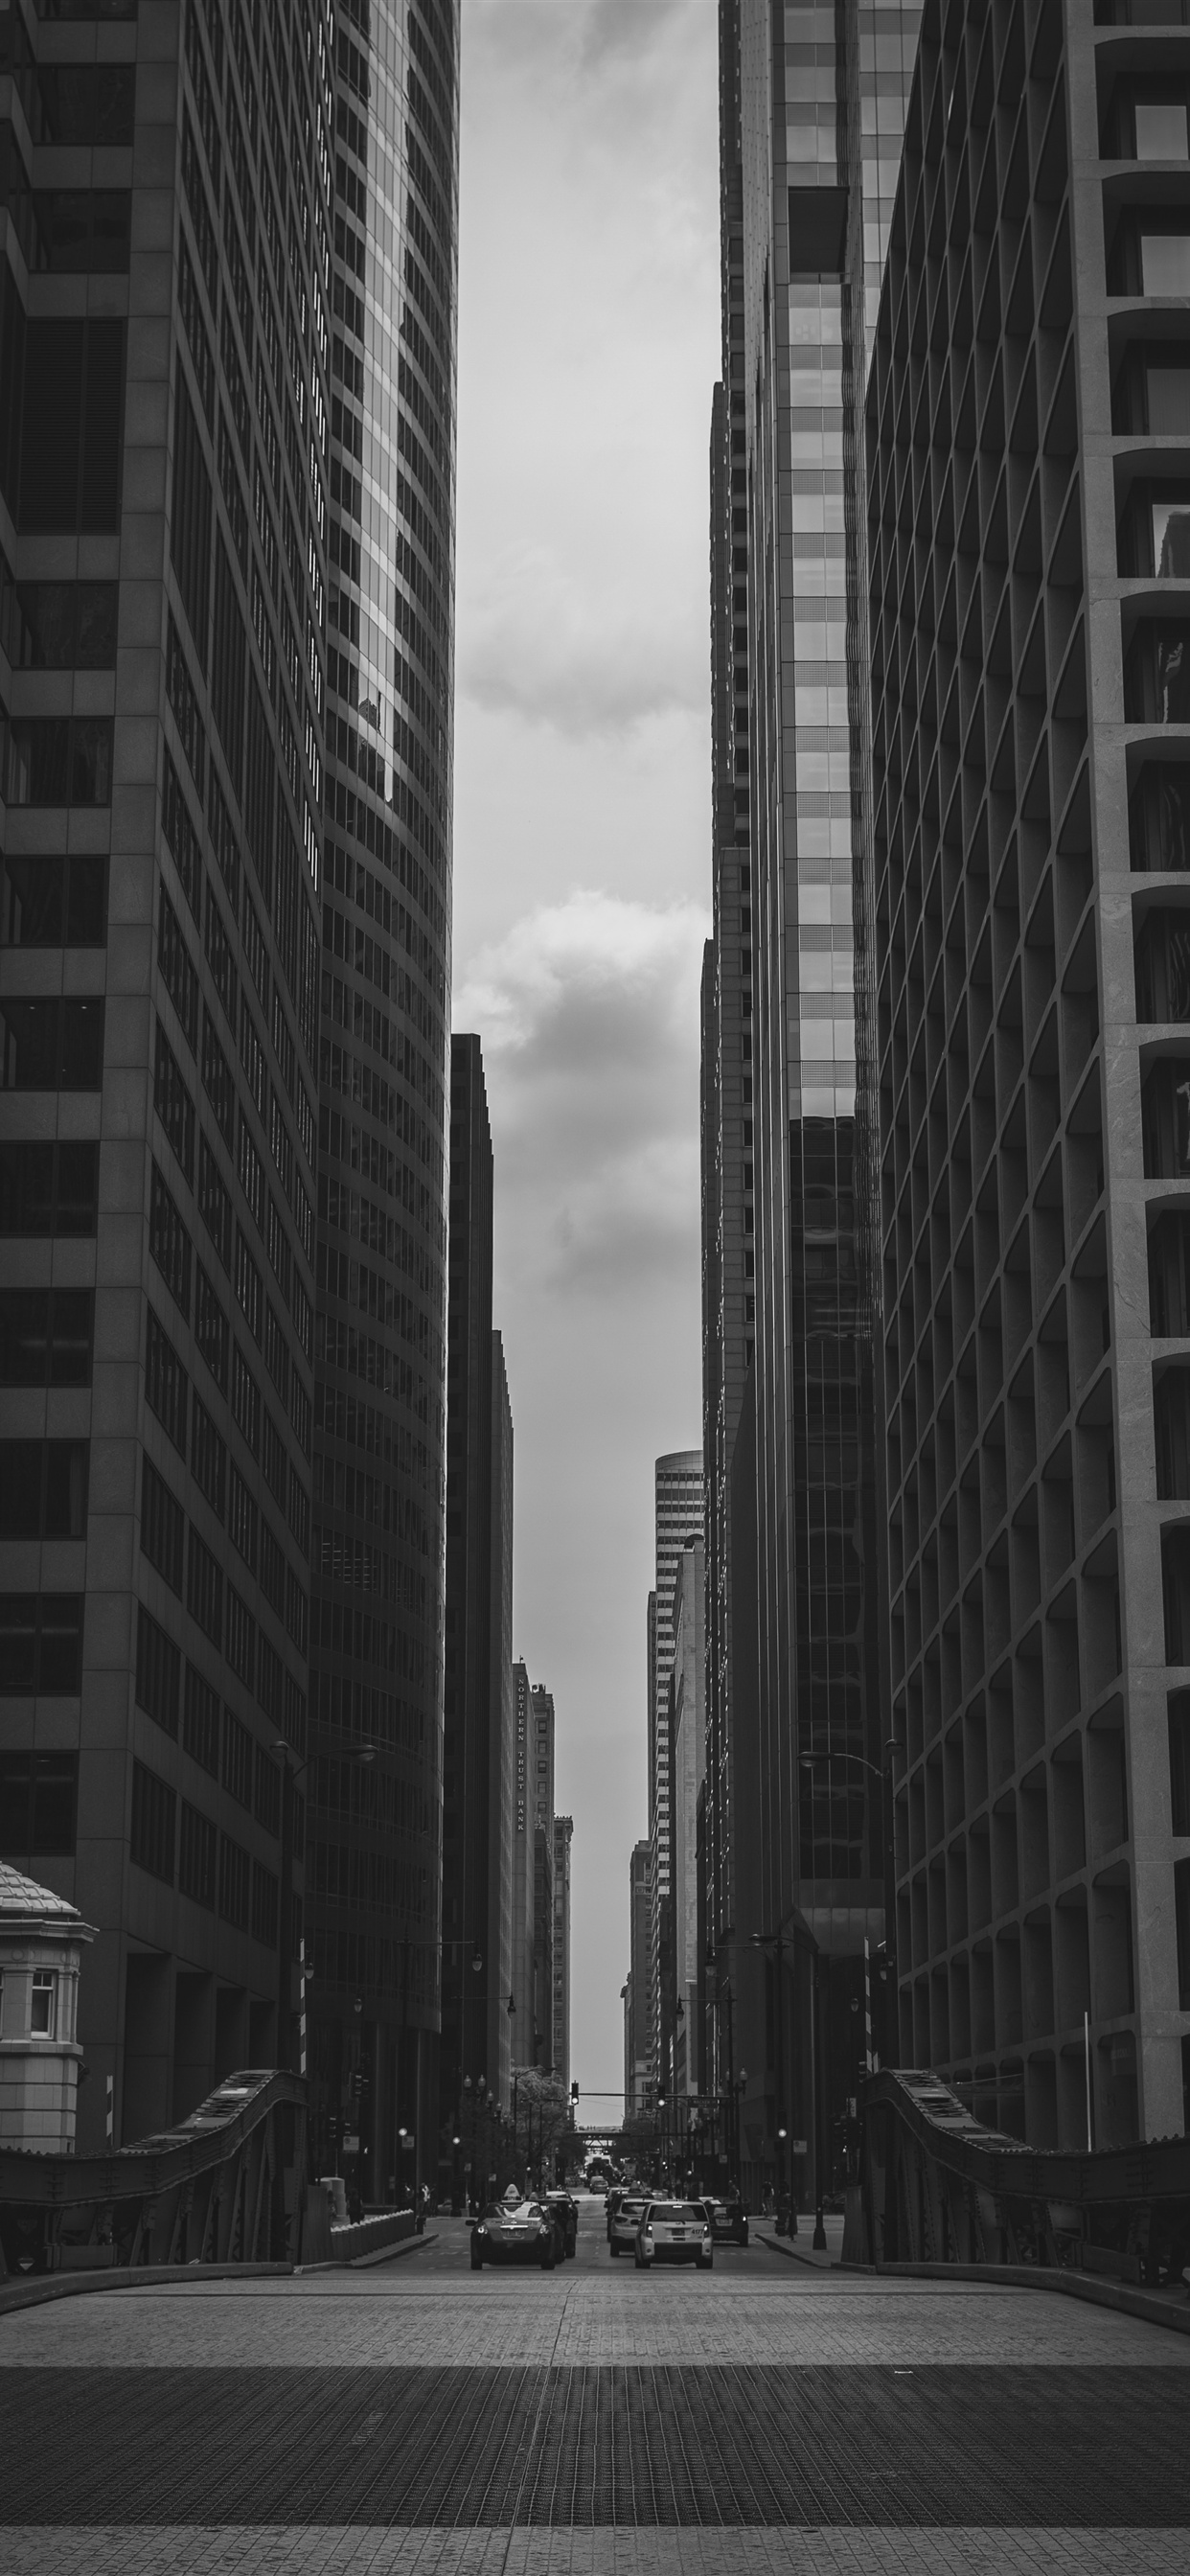 City Skyscrapers Road Black And White Iphone Xs Max X 8 7 6 5 4